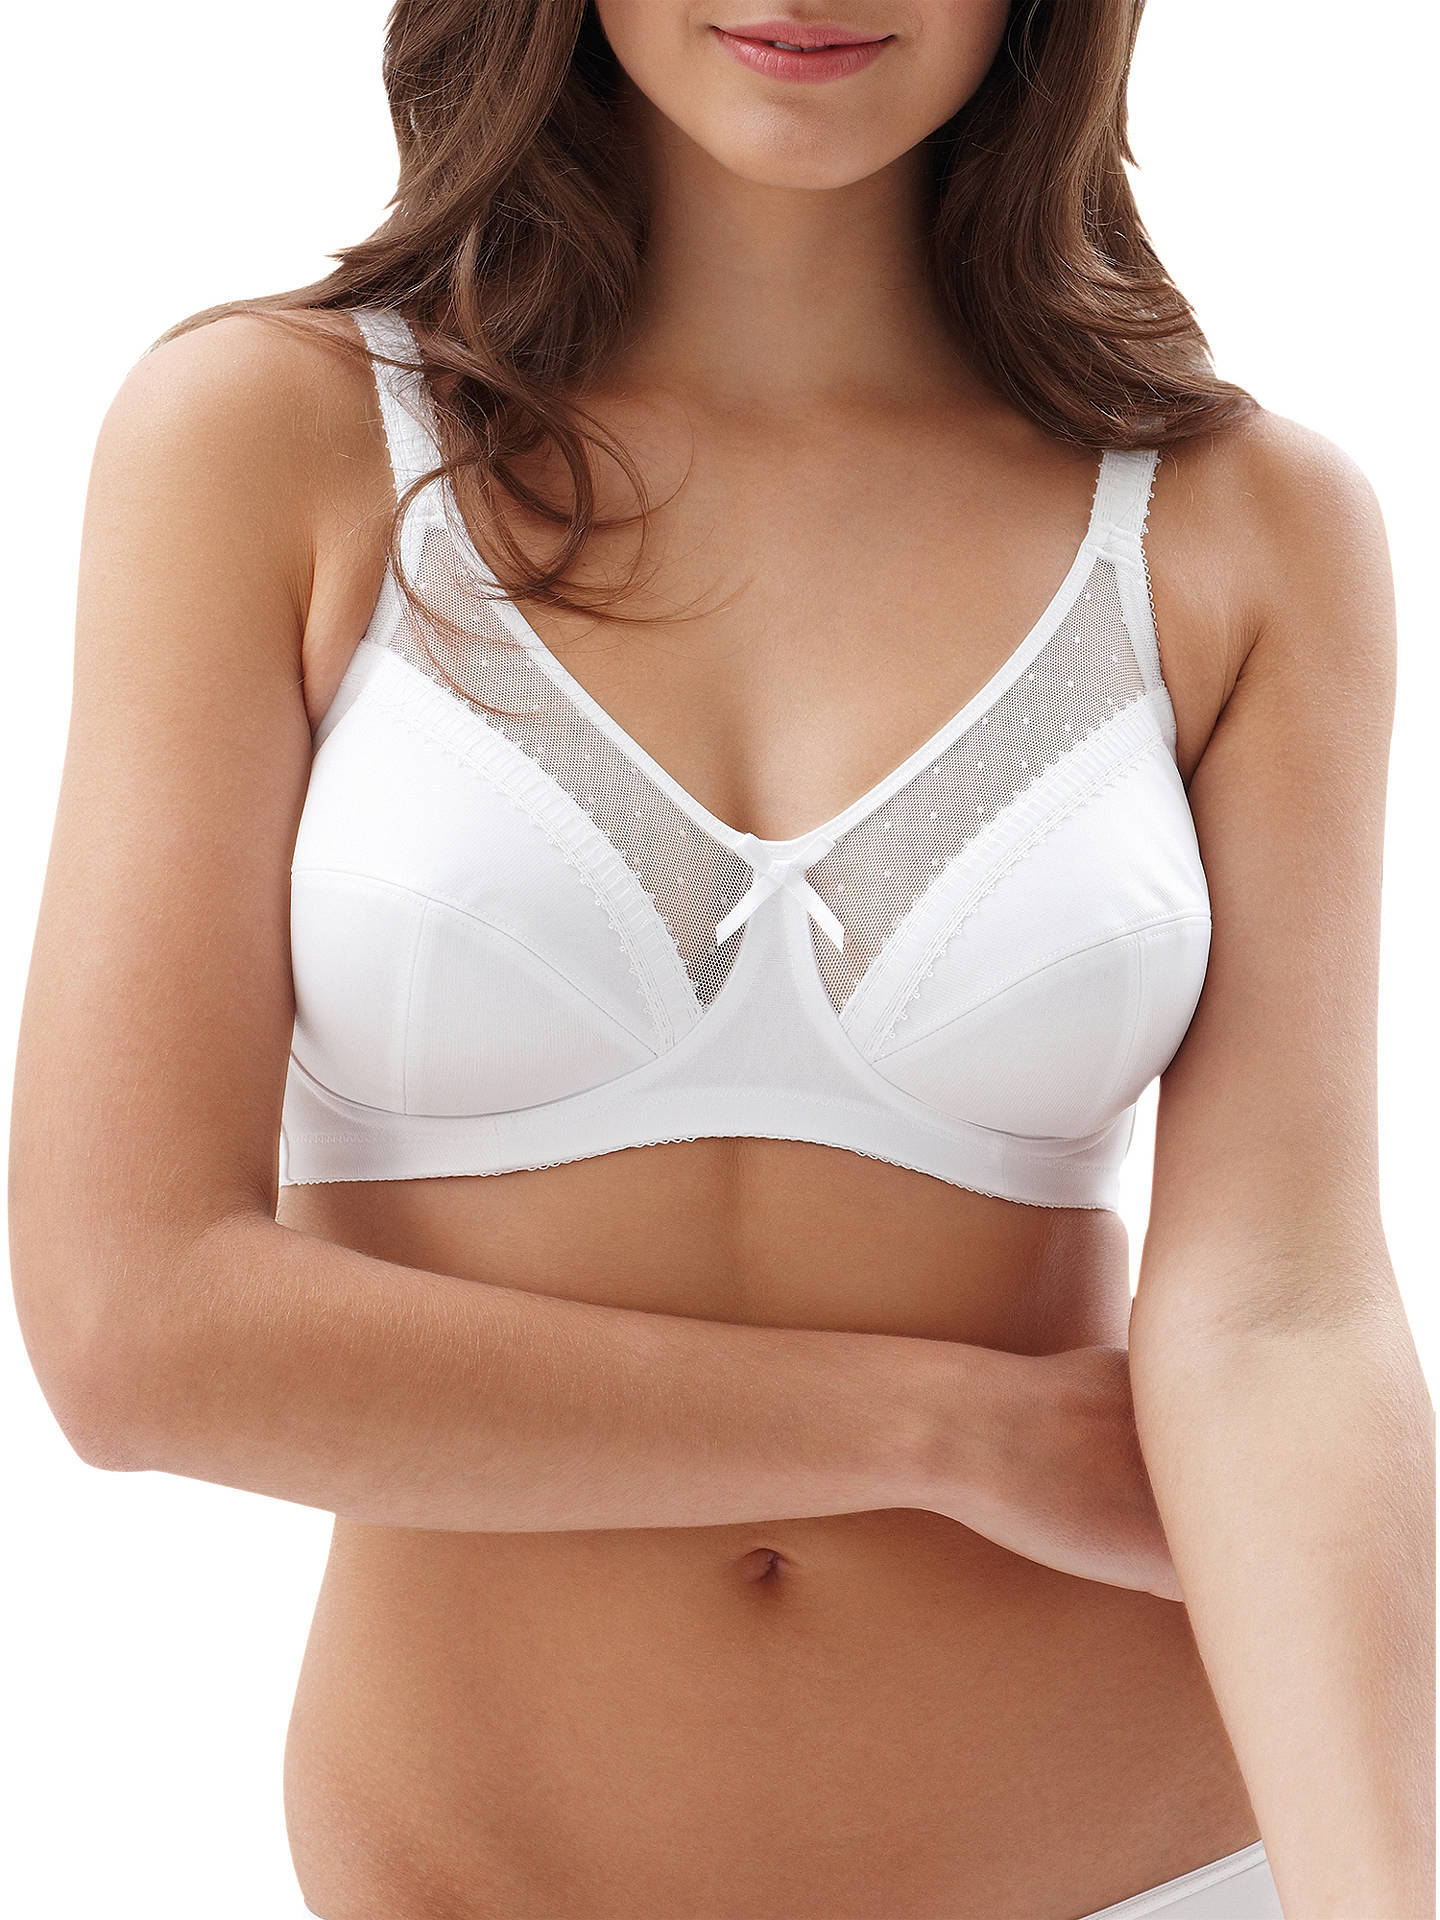 5e818dfccc1 Buy Royce Charlotte 821 Comfort Bra, White, 28DD Online at johnlewis.com ...